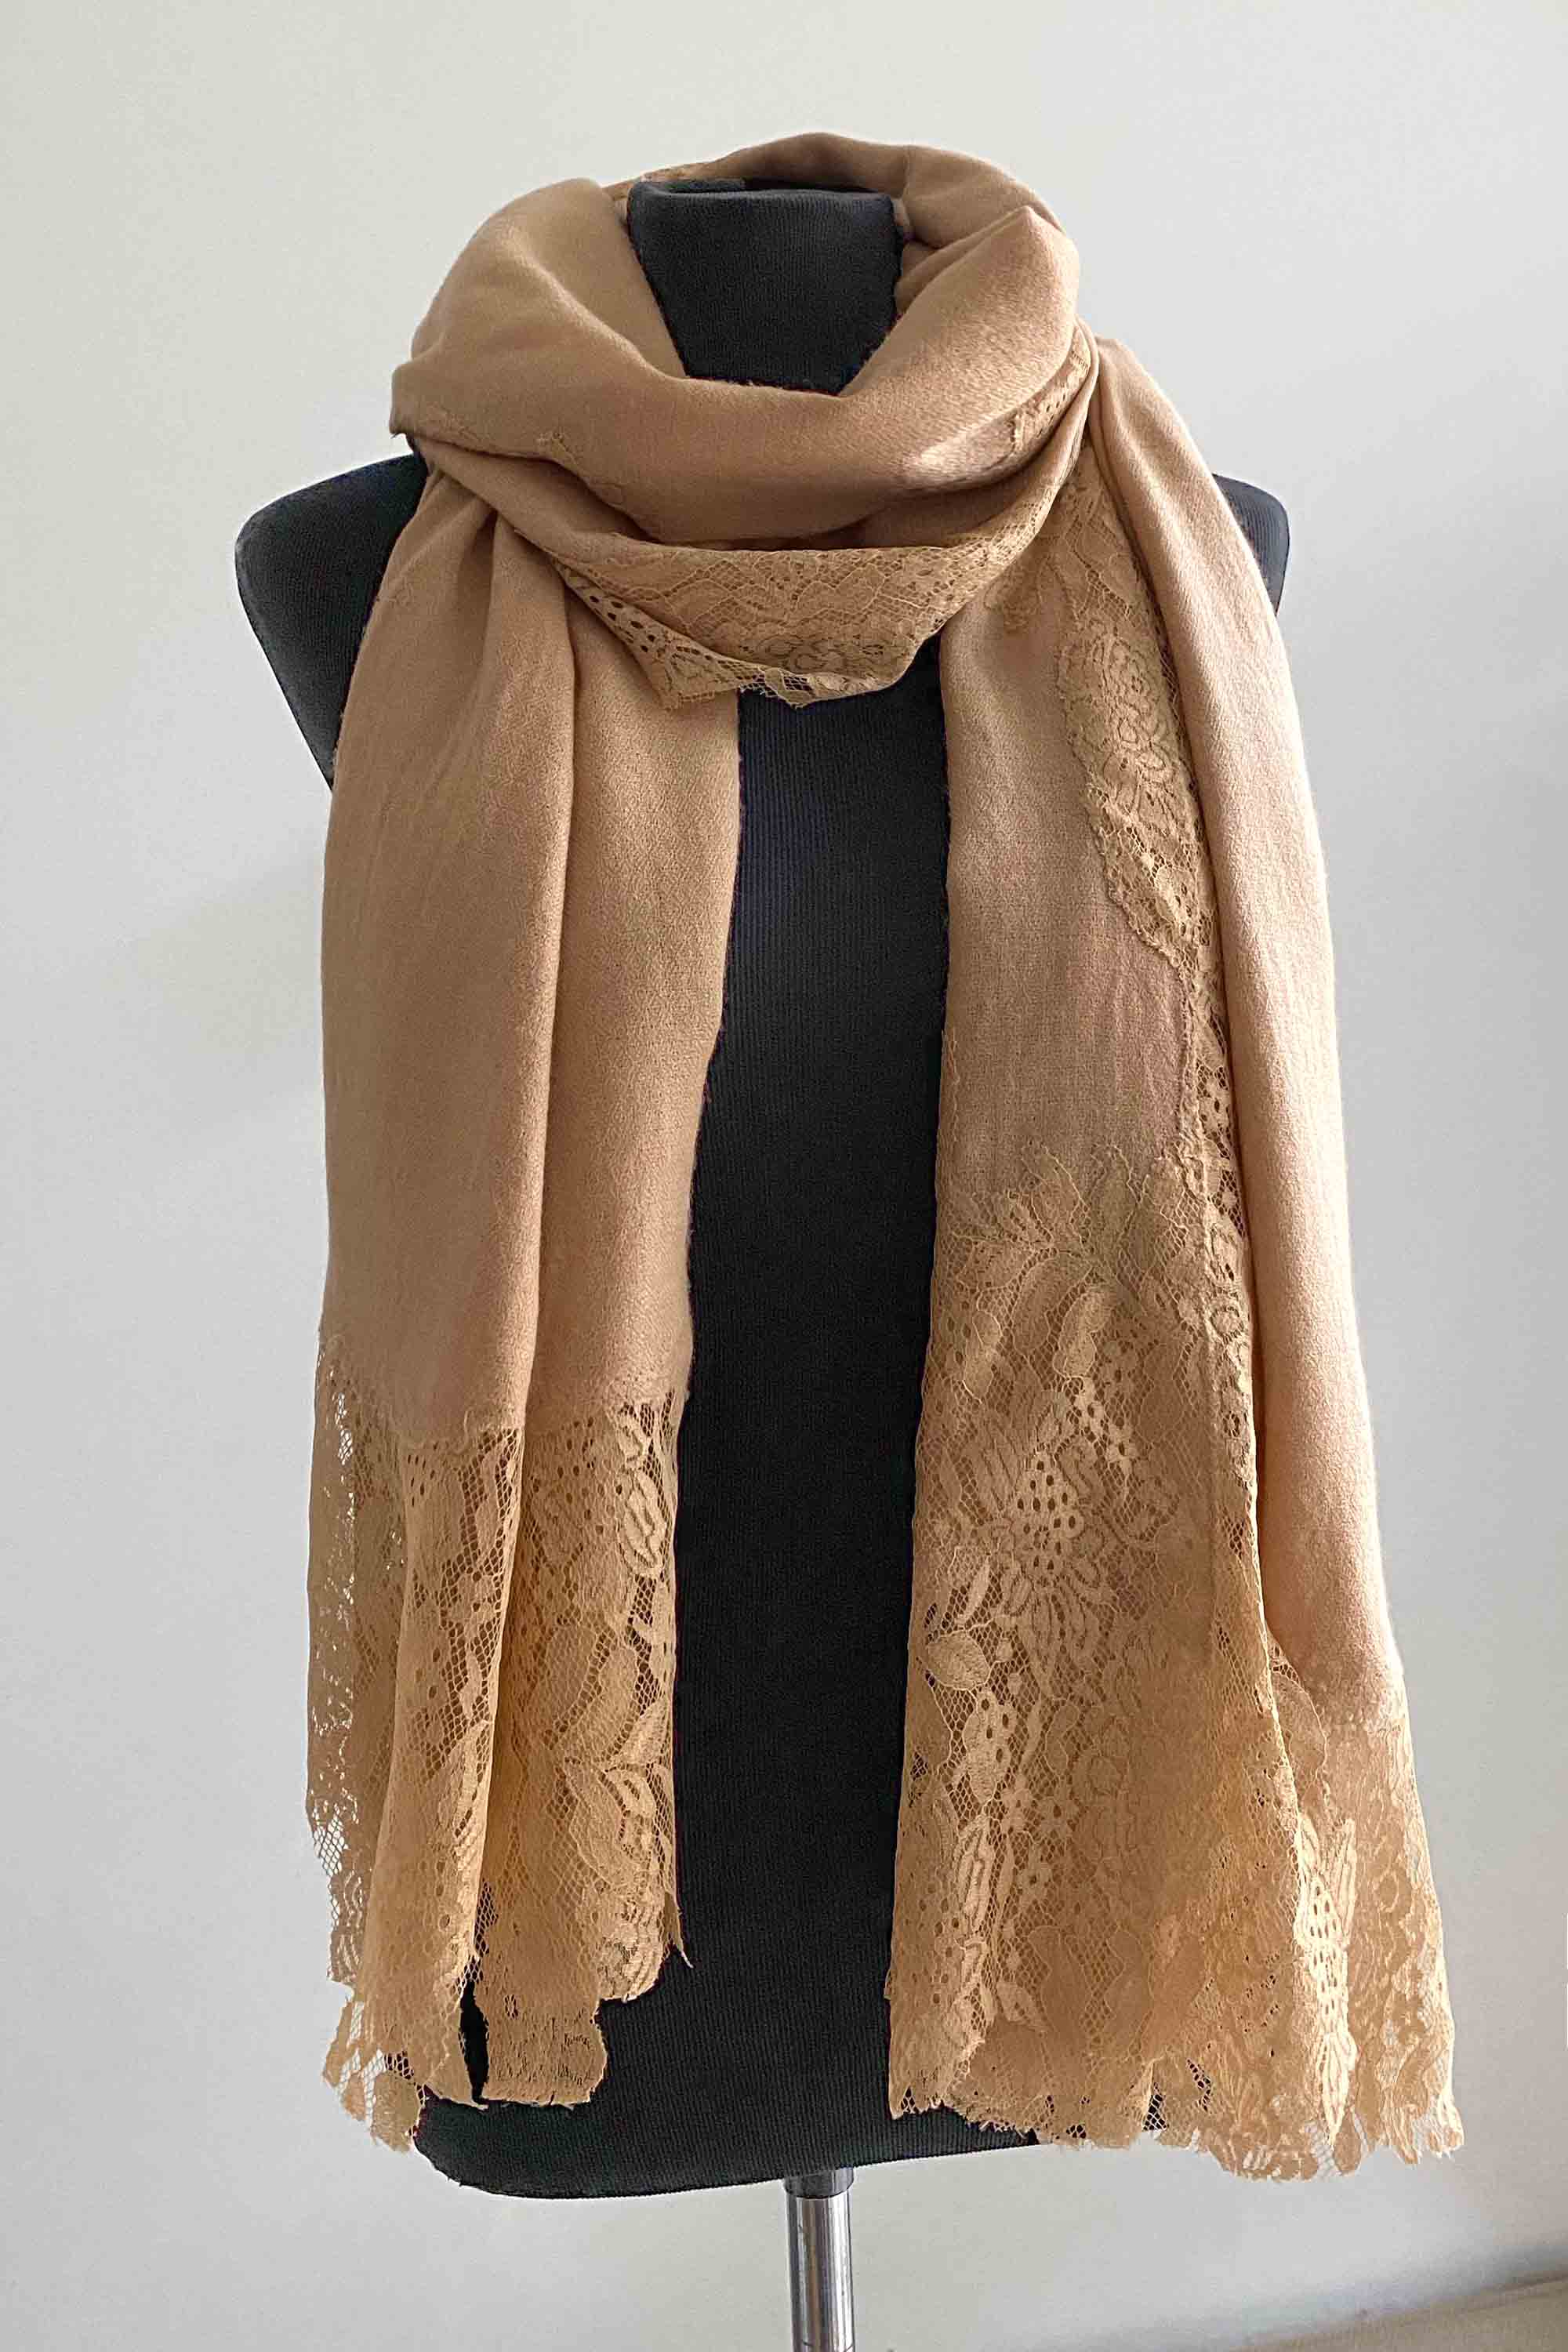 Cashmere pashmina shawl with laces in camel beige